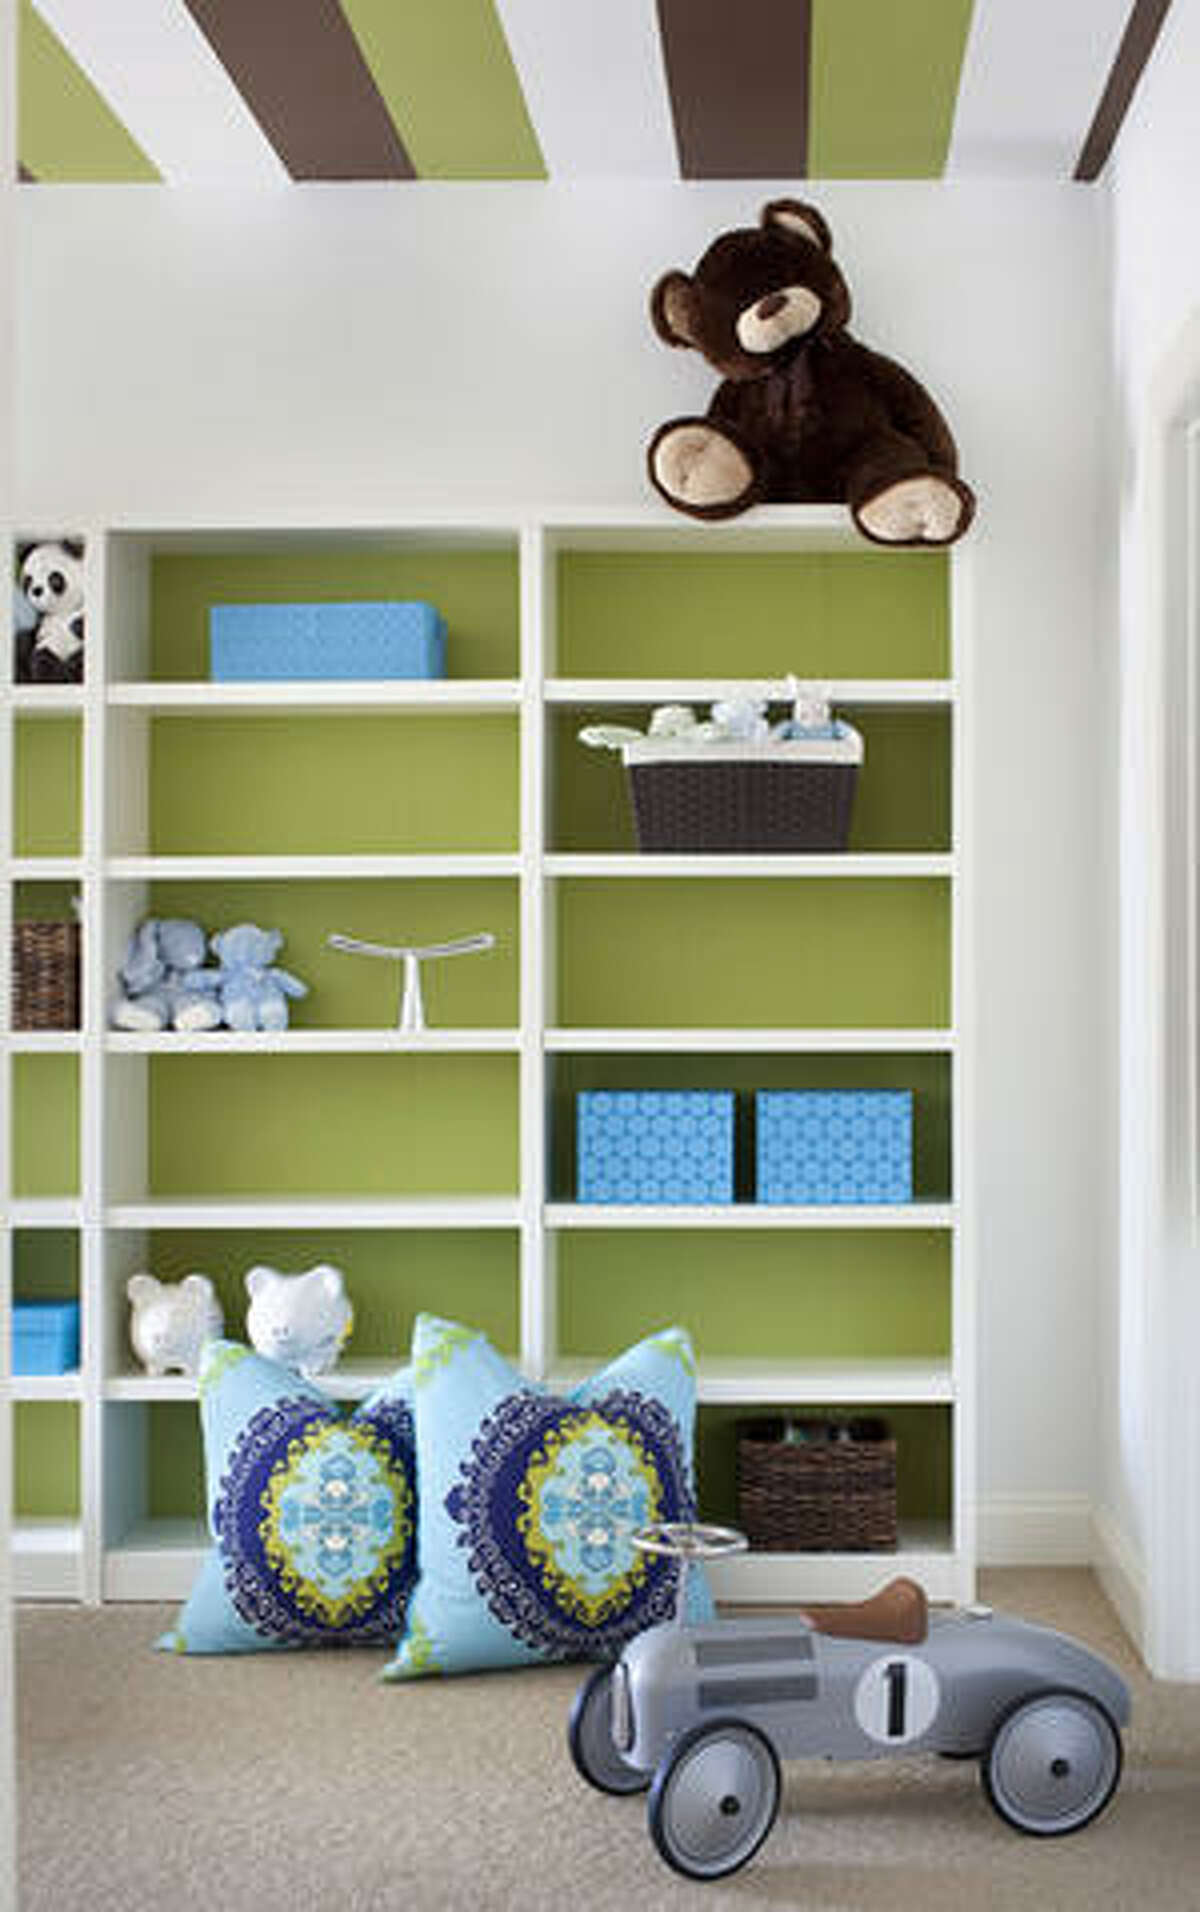 In this playroom featured on Decor Demon, designer Brian Patrick Flynn adds color to the ceiling and back of the bookcases.